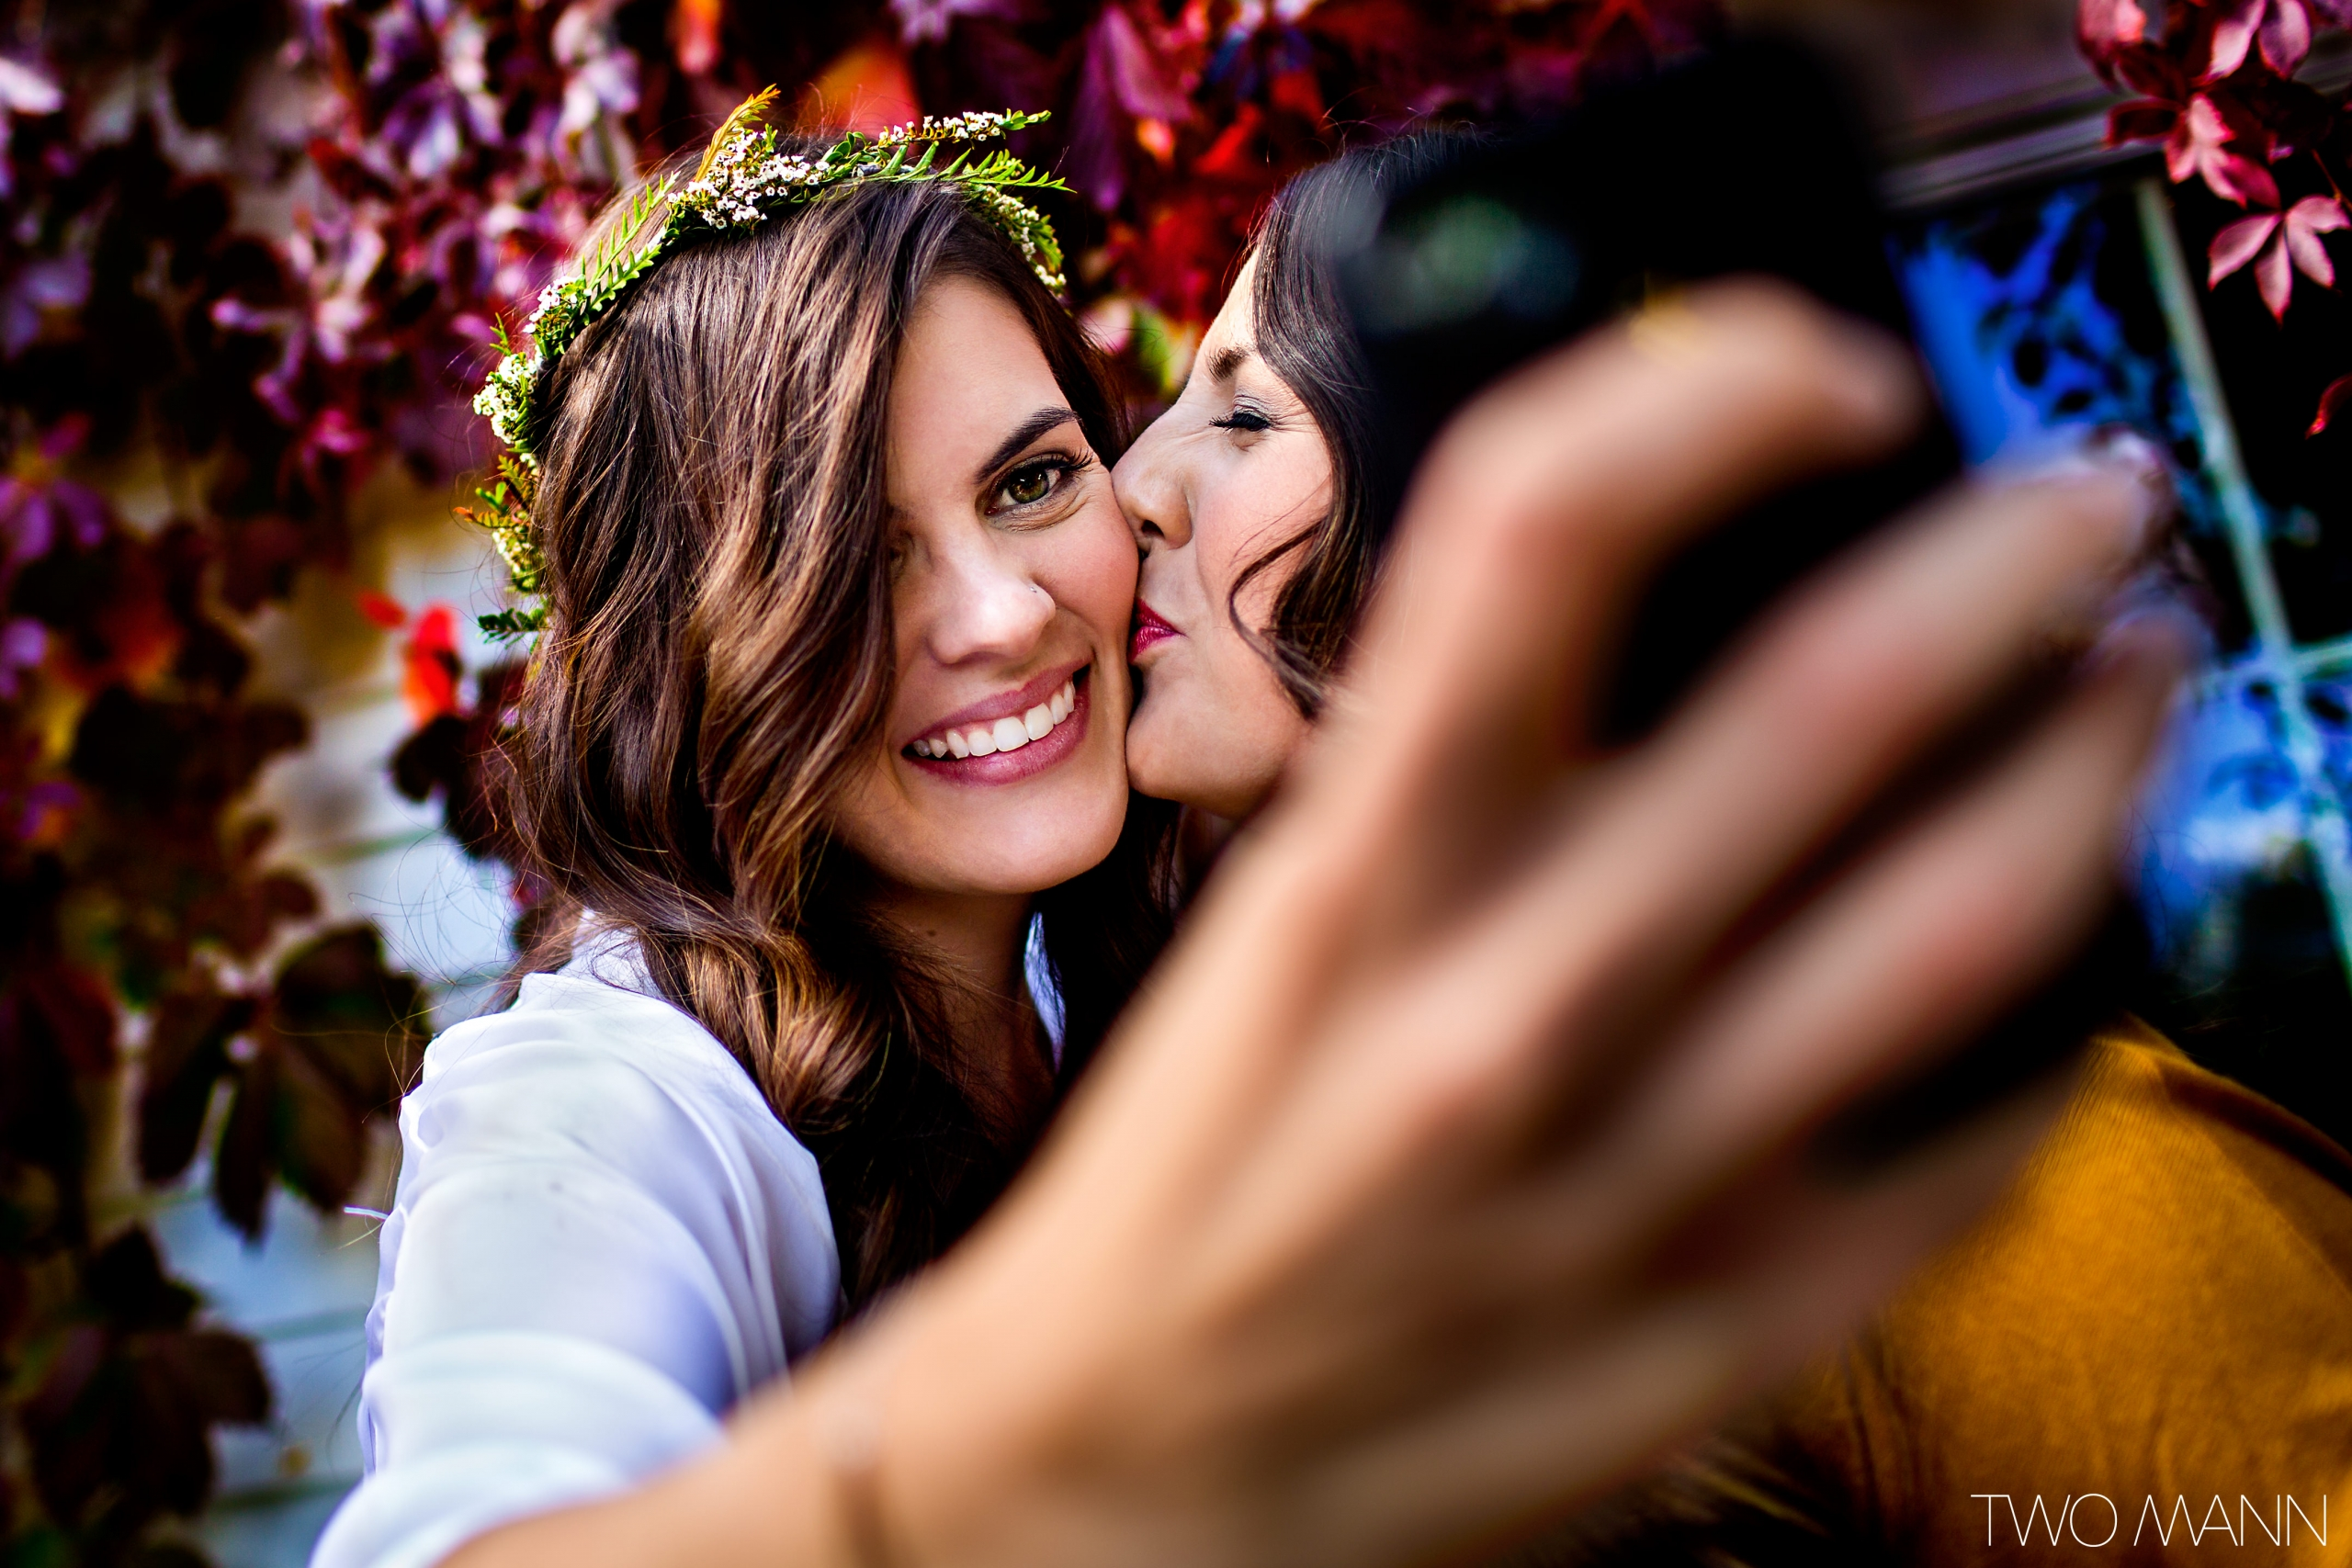 bride taking a picture of a friend and herself hugging together with her phone